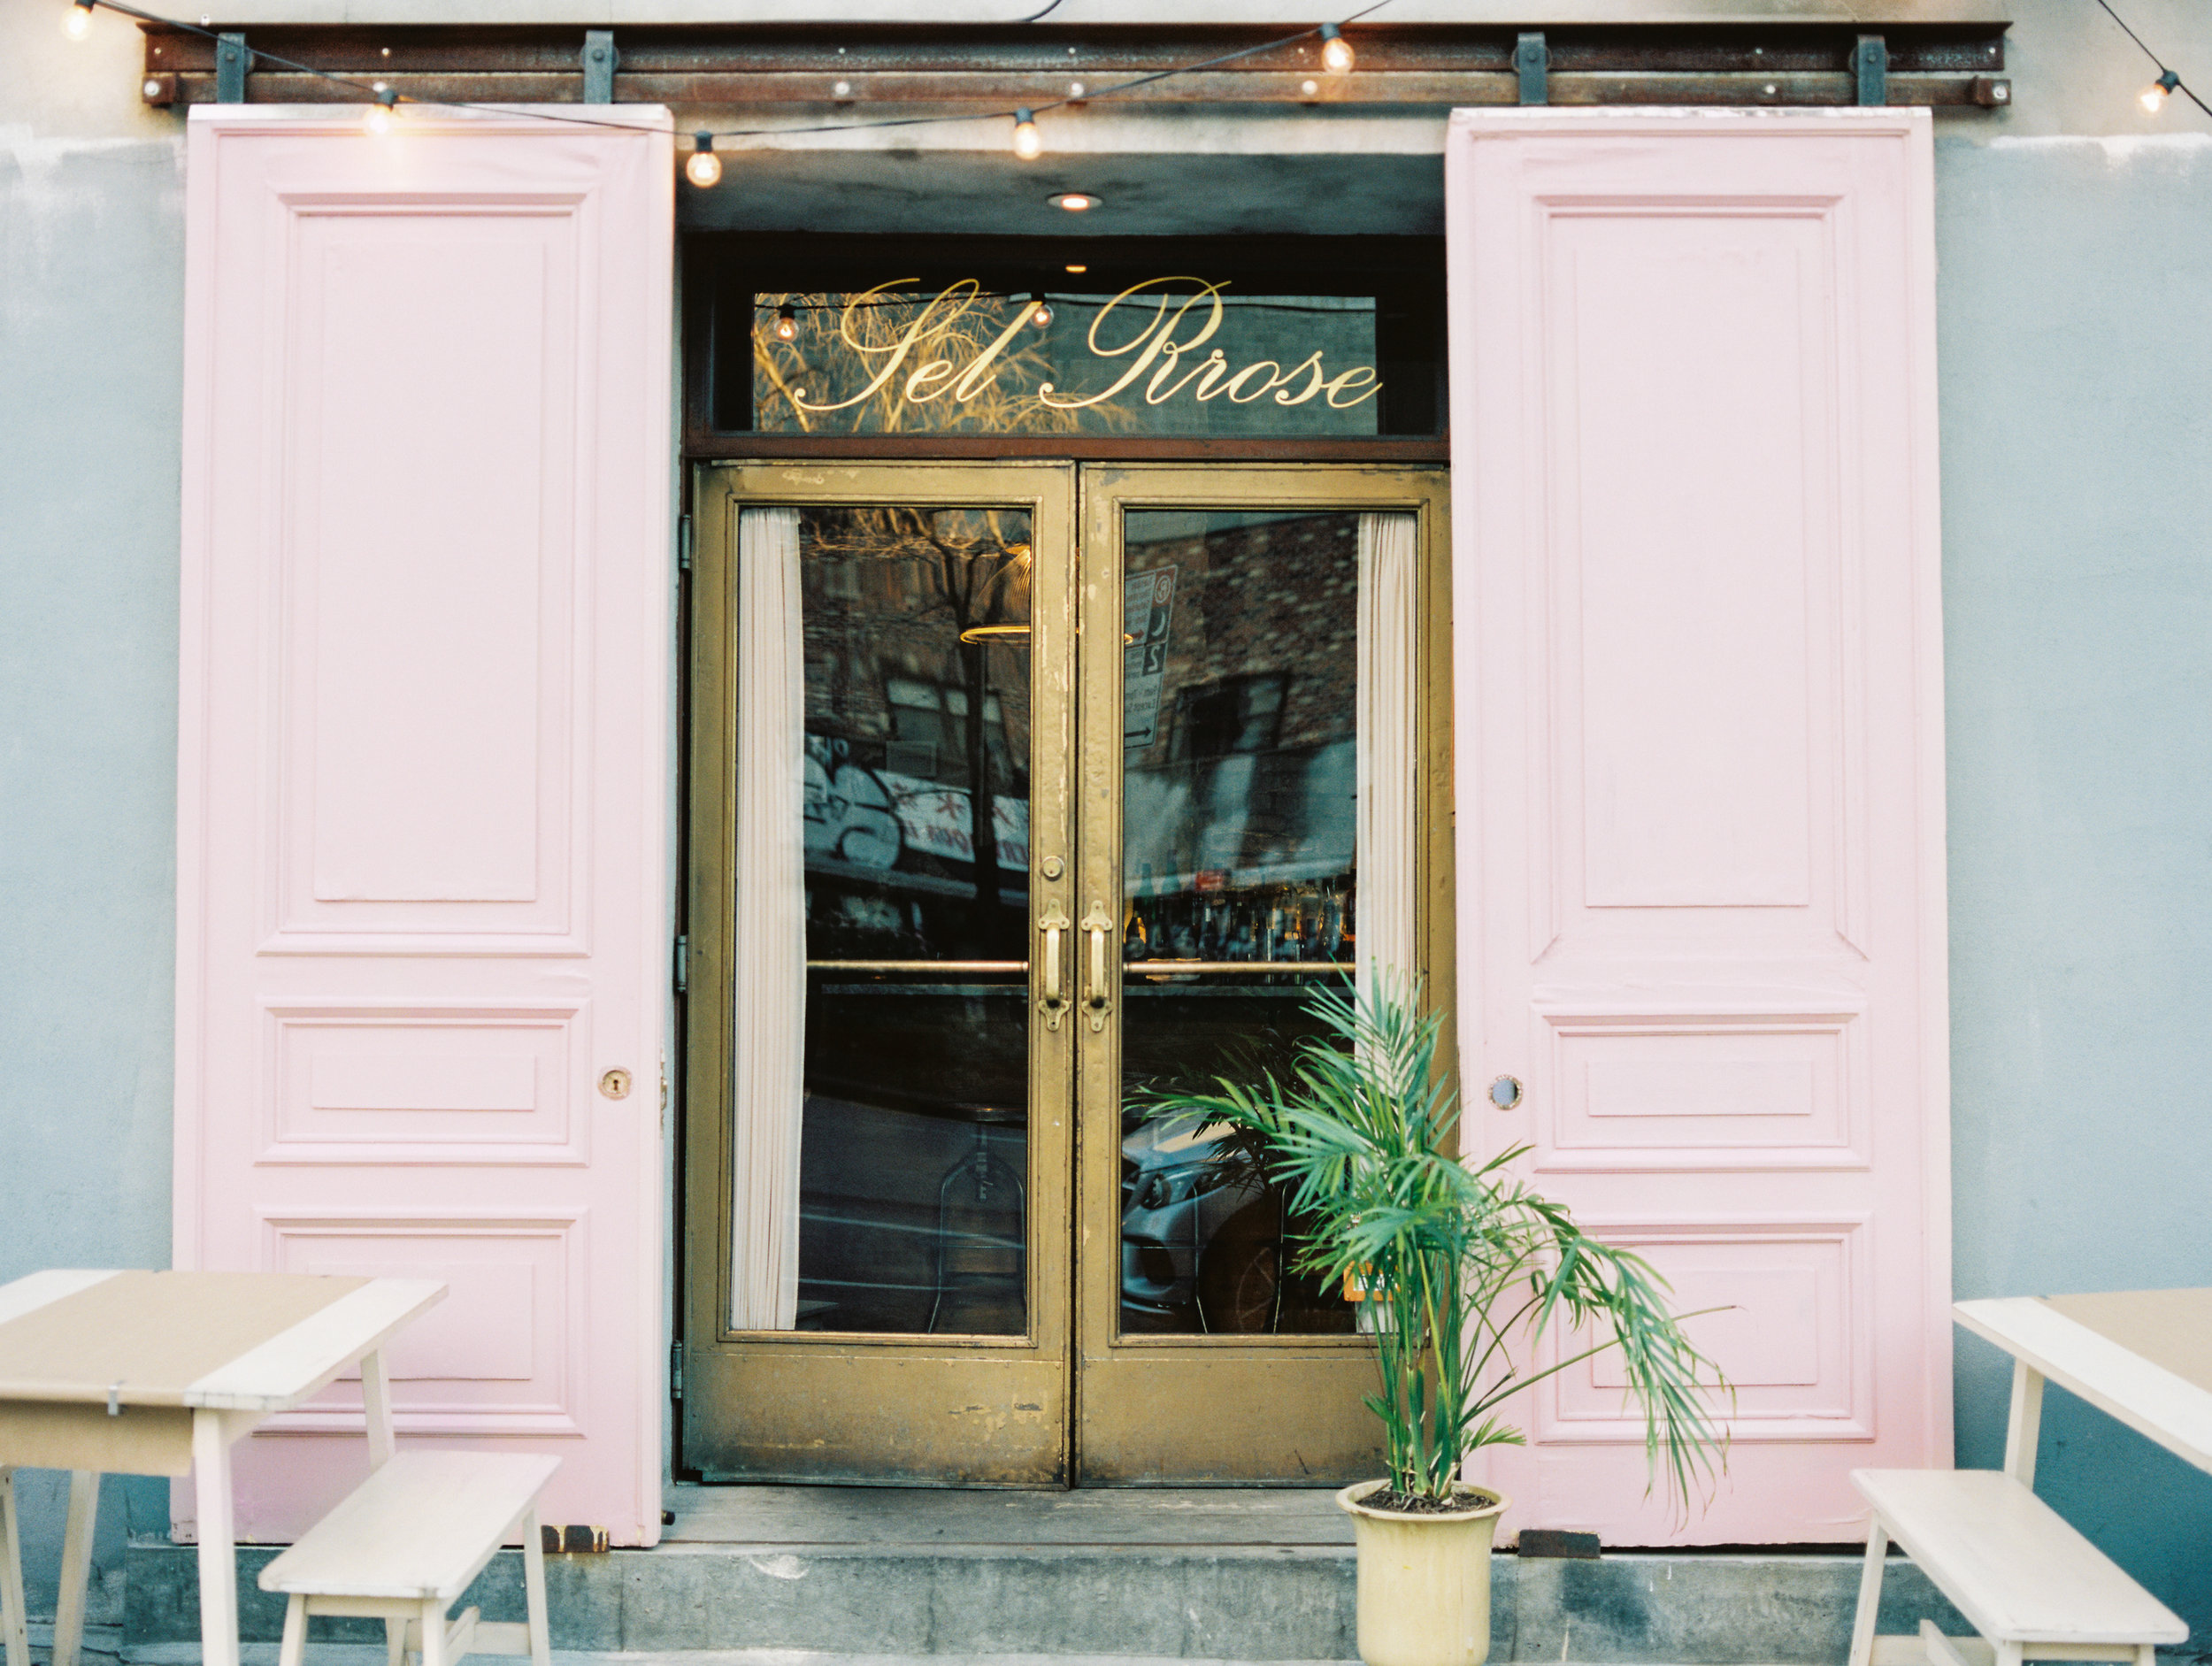 Sel Rrose exterior | Best Happy Hour in NYC's LES